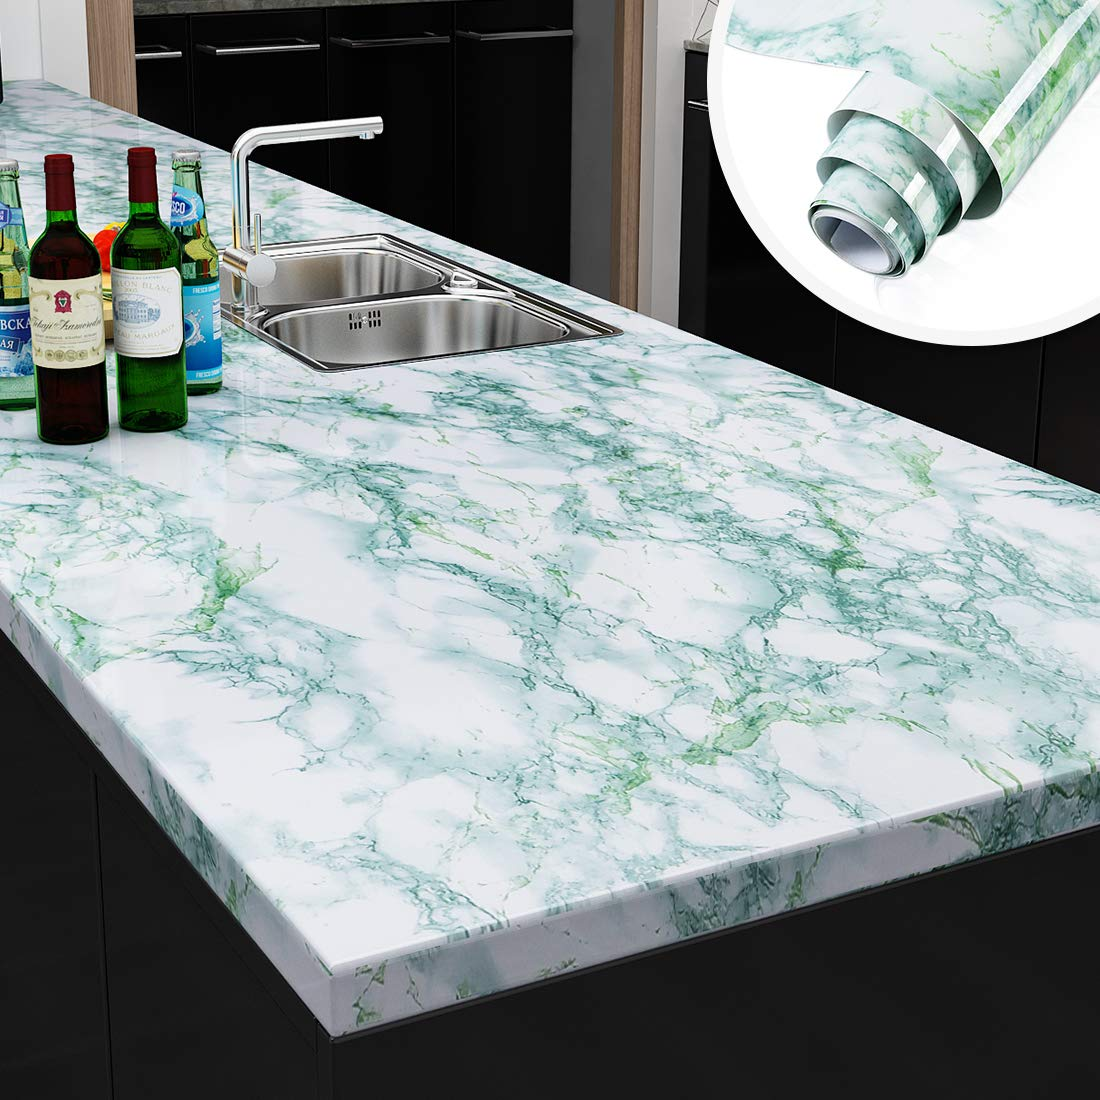 - Buy Emerald Green Marble Countertops Peel And Stick Wallpaper For